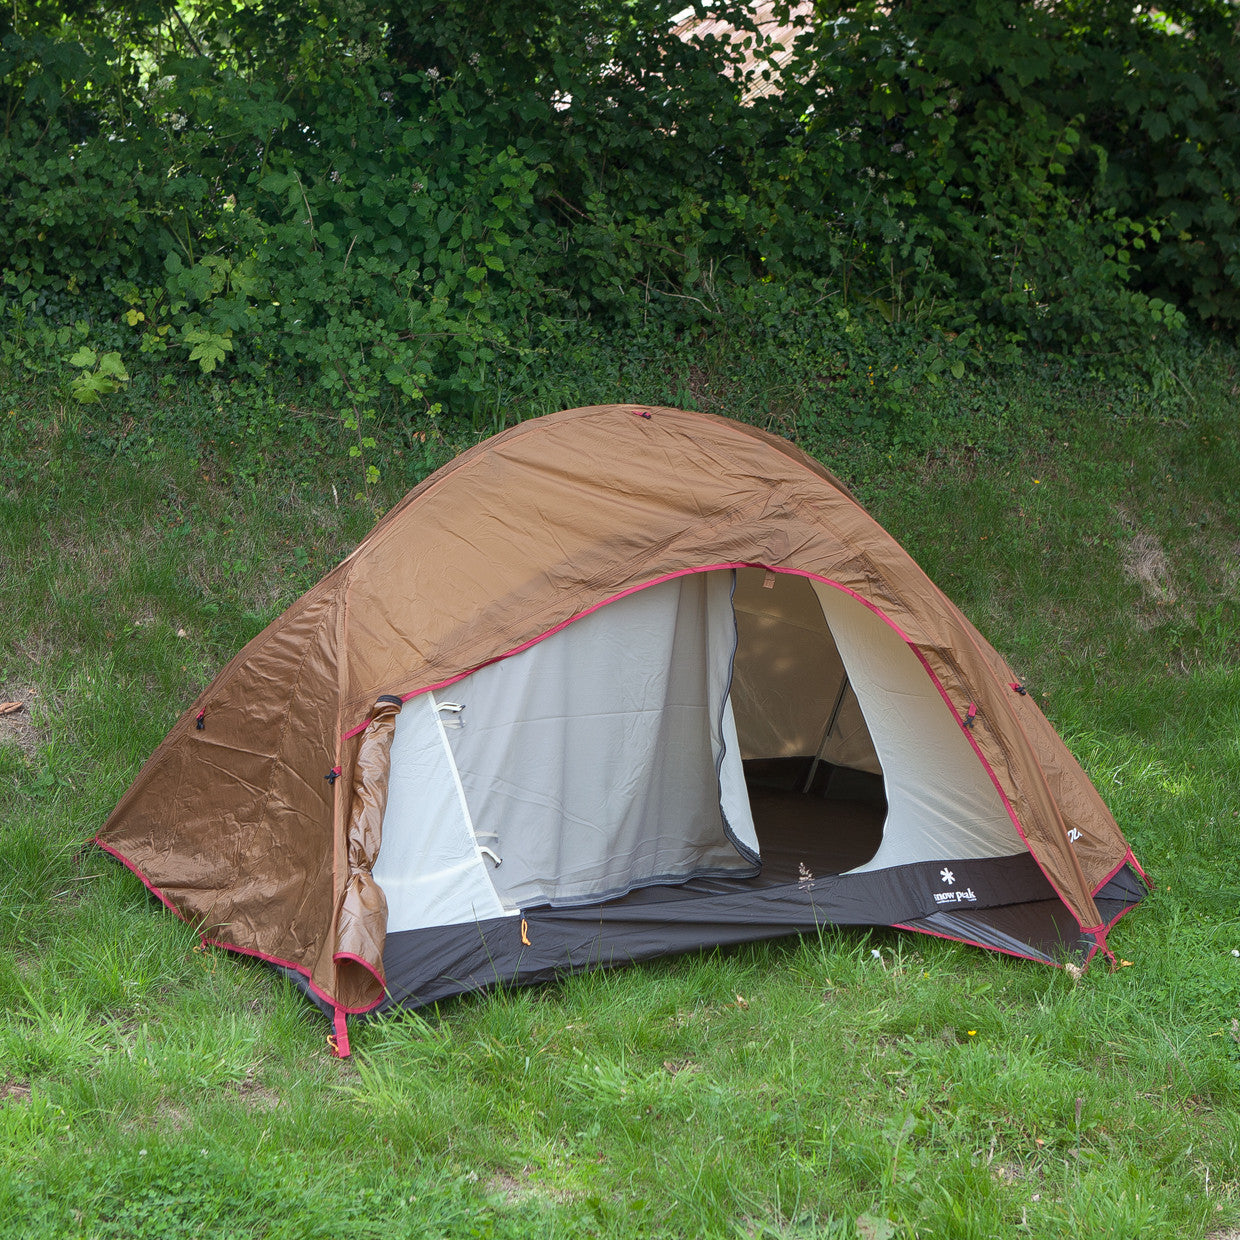 Snow Peak Landbreeze Duo Tent